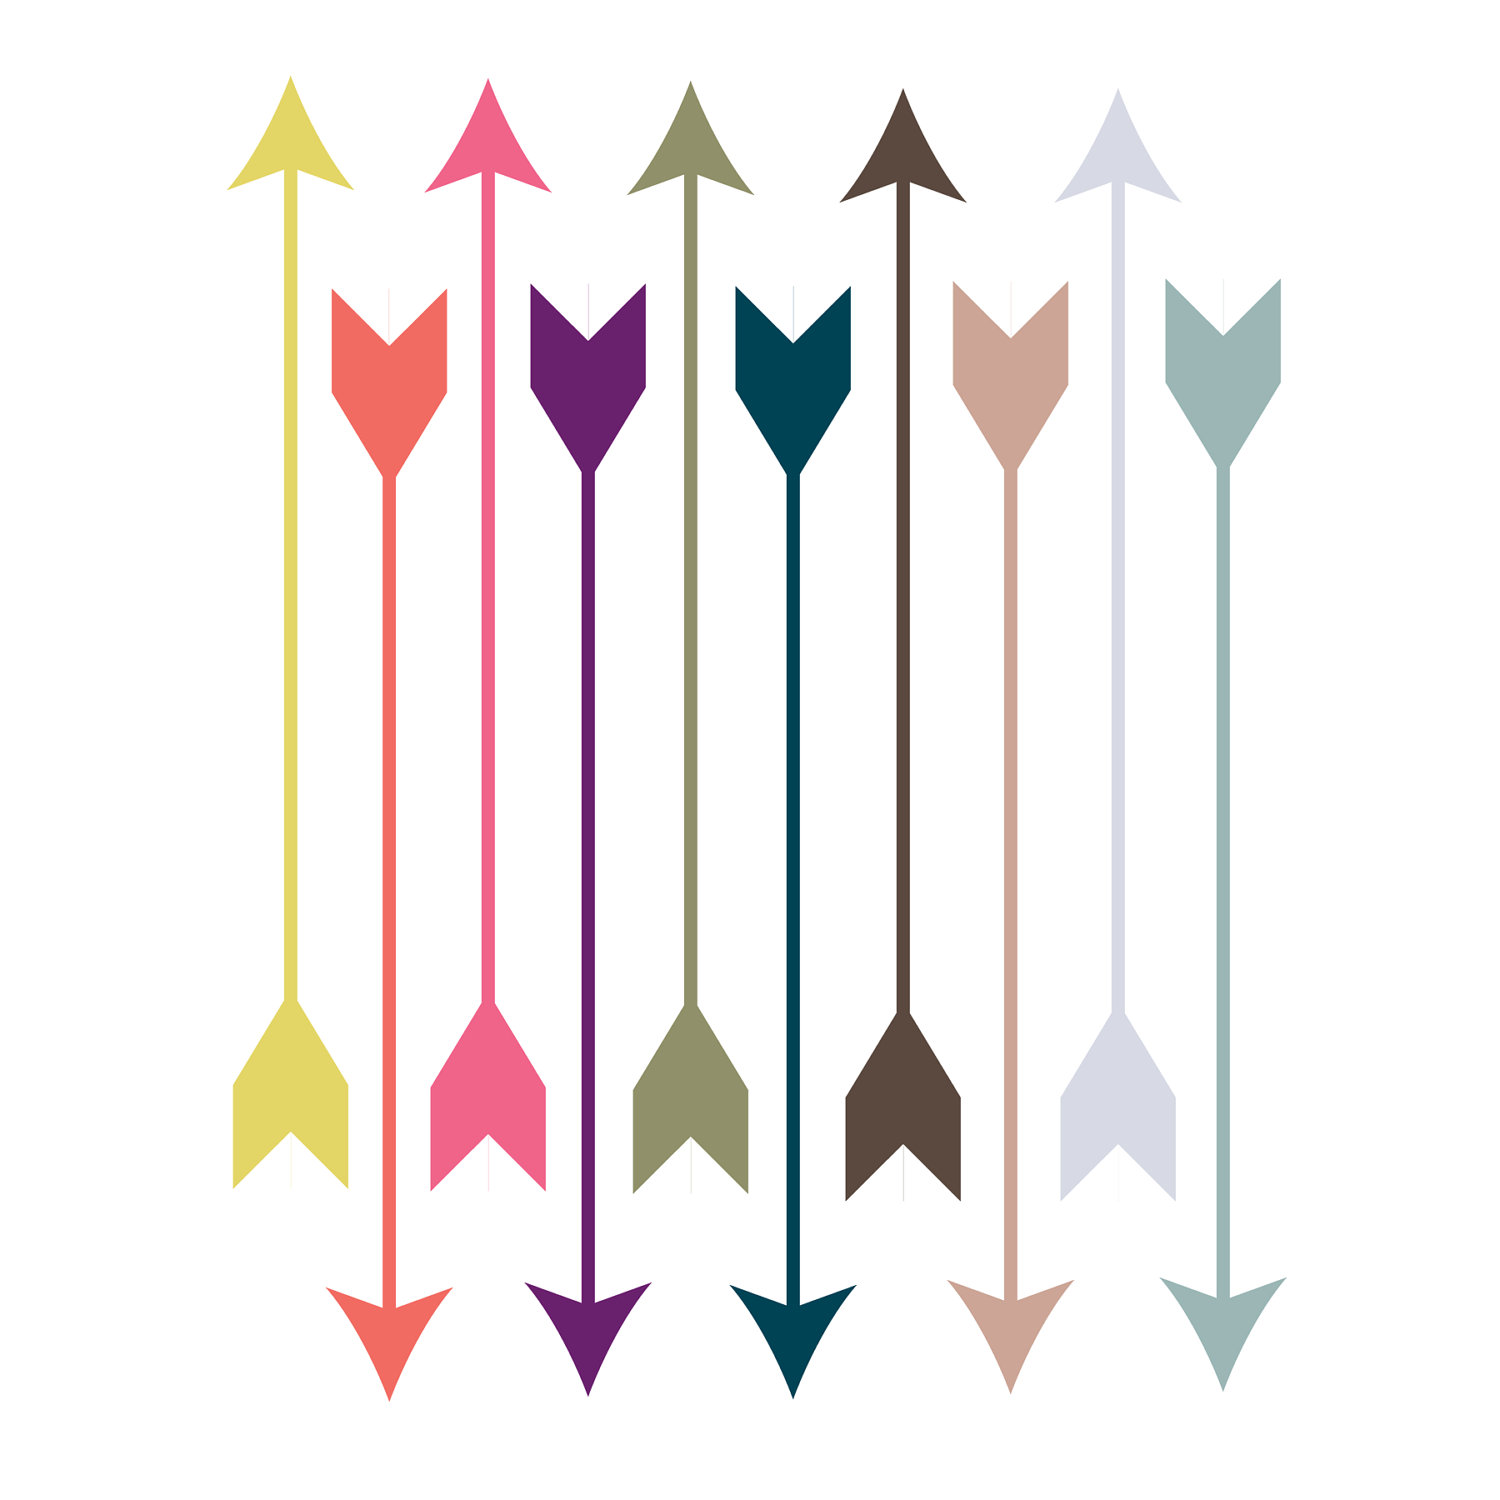 Clipart Of Arrows - Cliparts.co